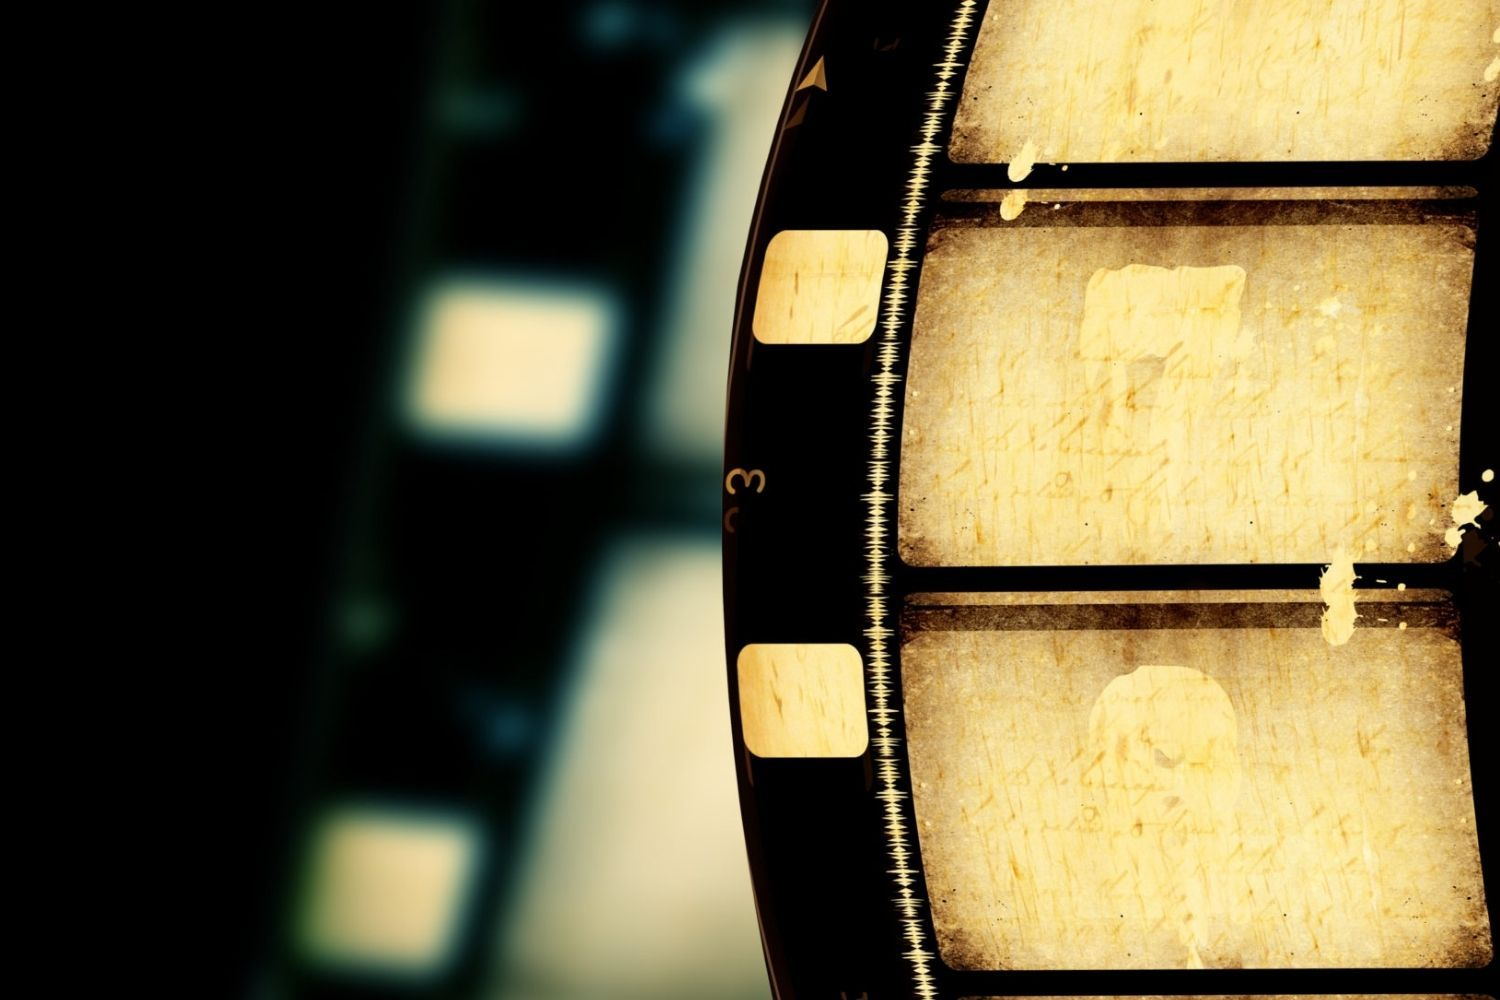 A documentary film course in presentation skills whether you are brushing up on communication skills or starting from scratch